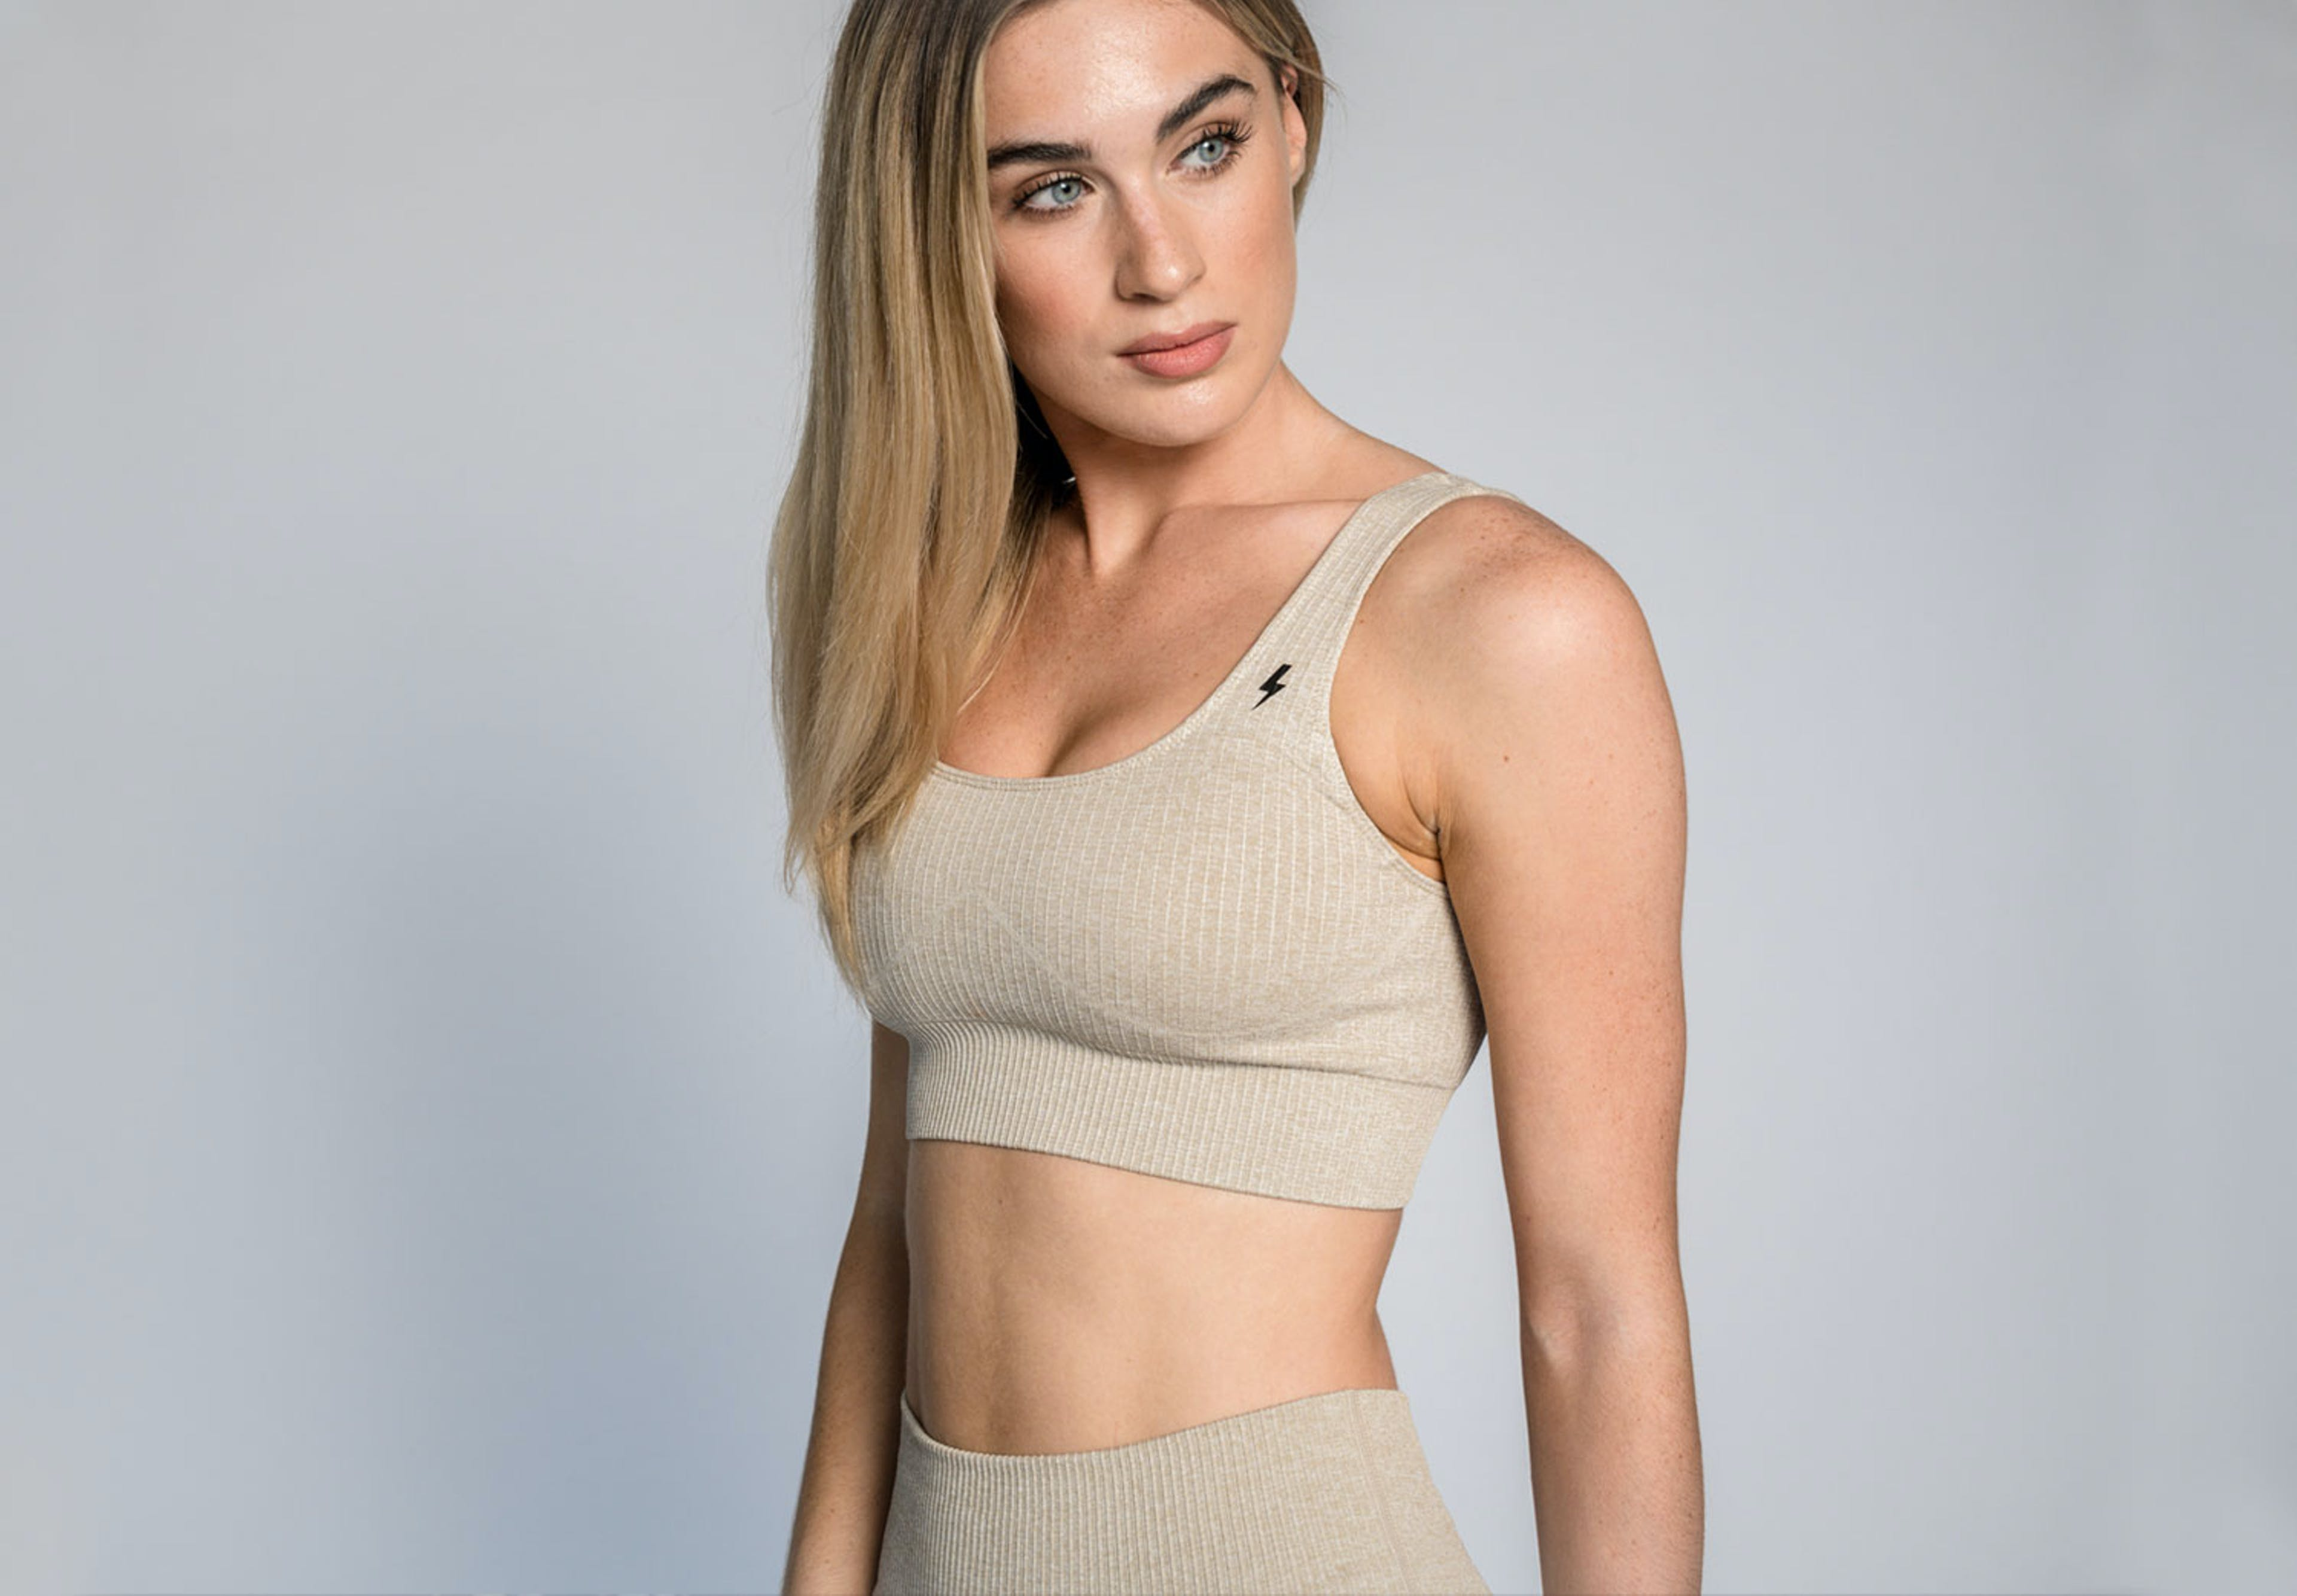 Athleisure wear by Powercut is perfect for everyone, no matter what shape your in. Shop a variety of products to suit all your lifestyle needs